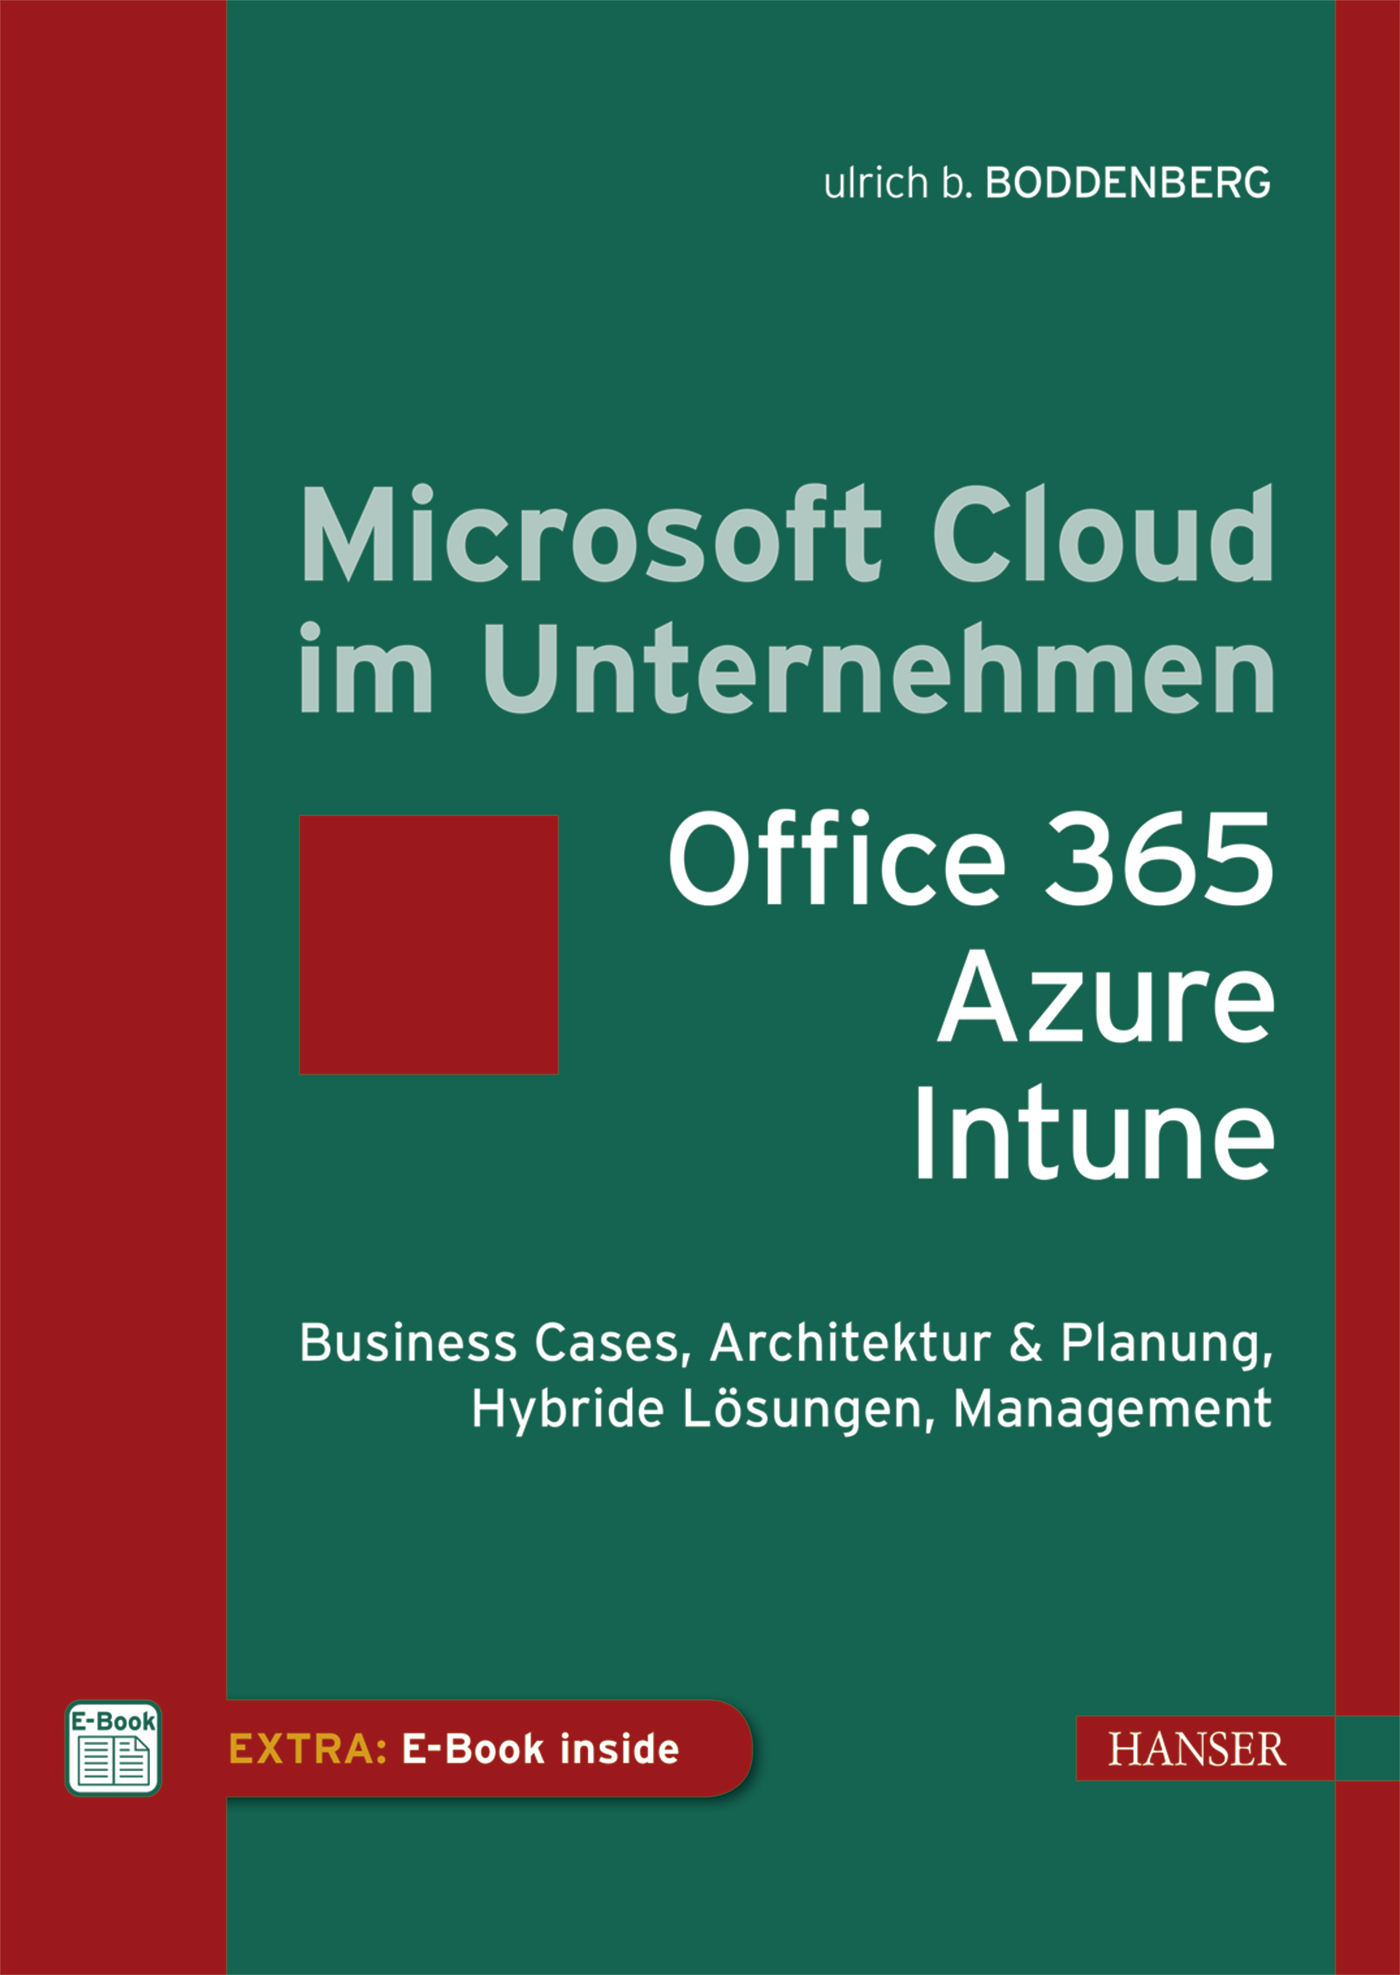 Boddenberg, Microsoft Cloud im Unternehmen: Office 365, Azure, Power BI, Intune, 978-3-446-44236-8